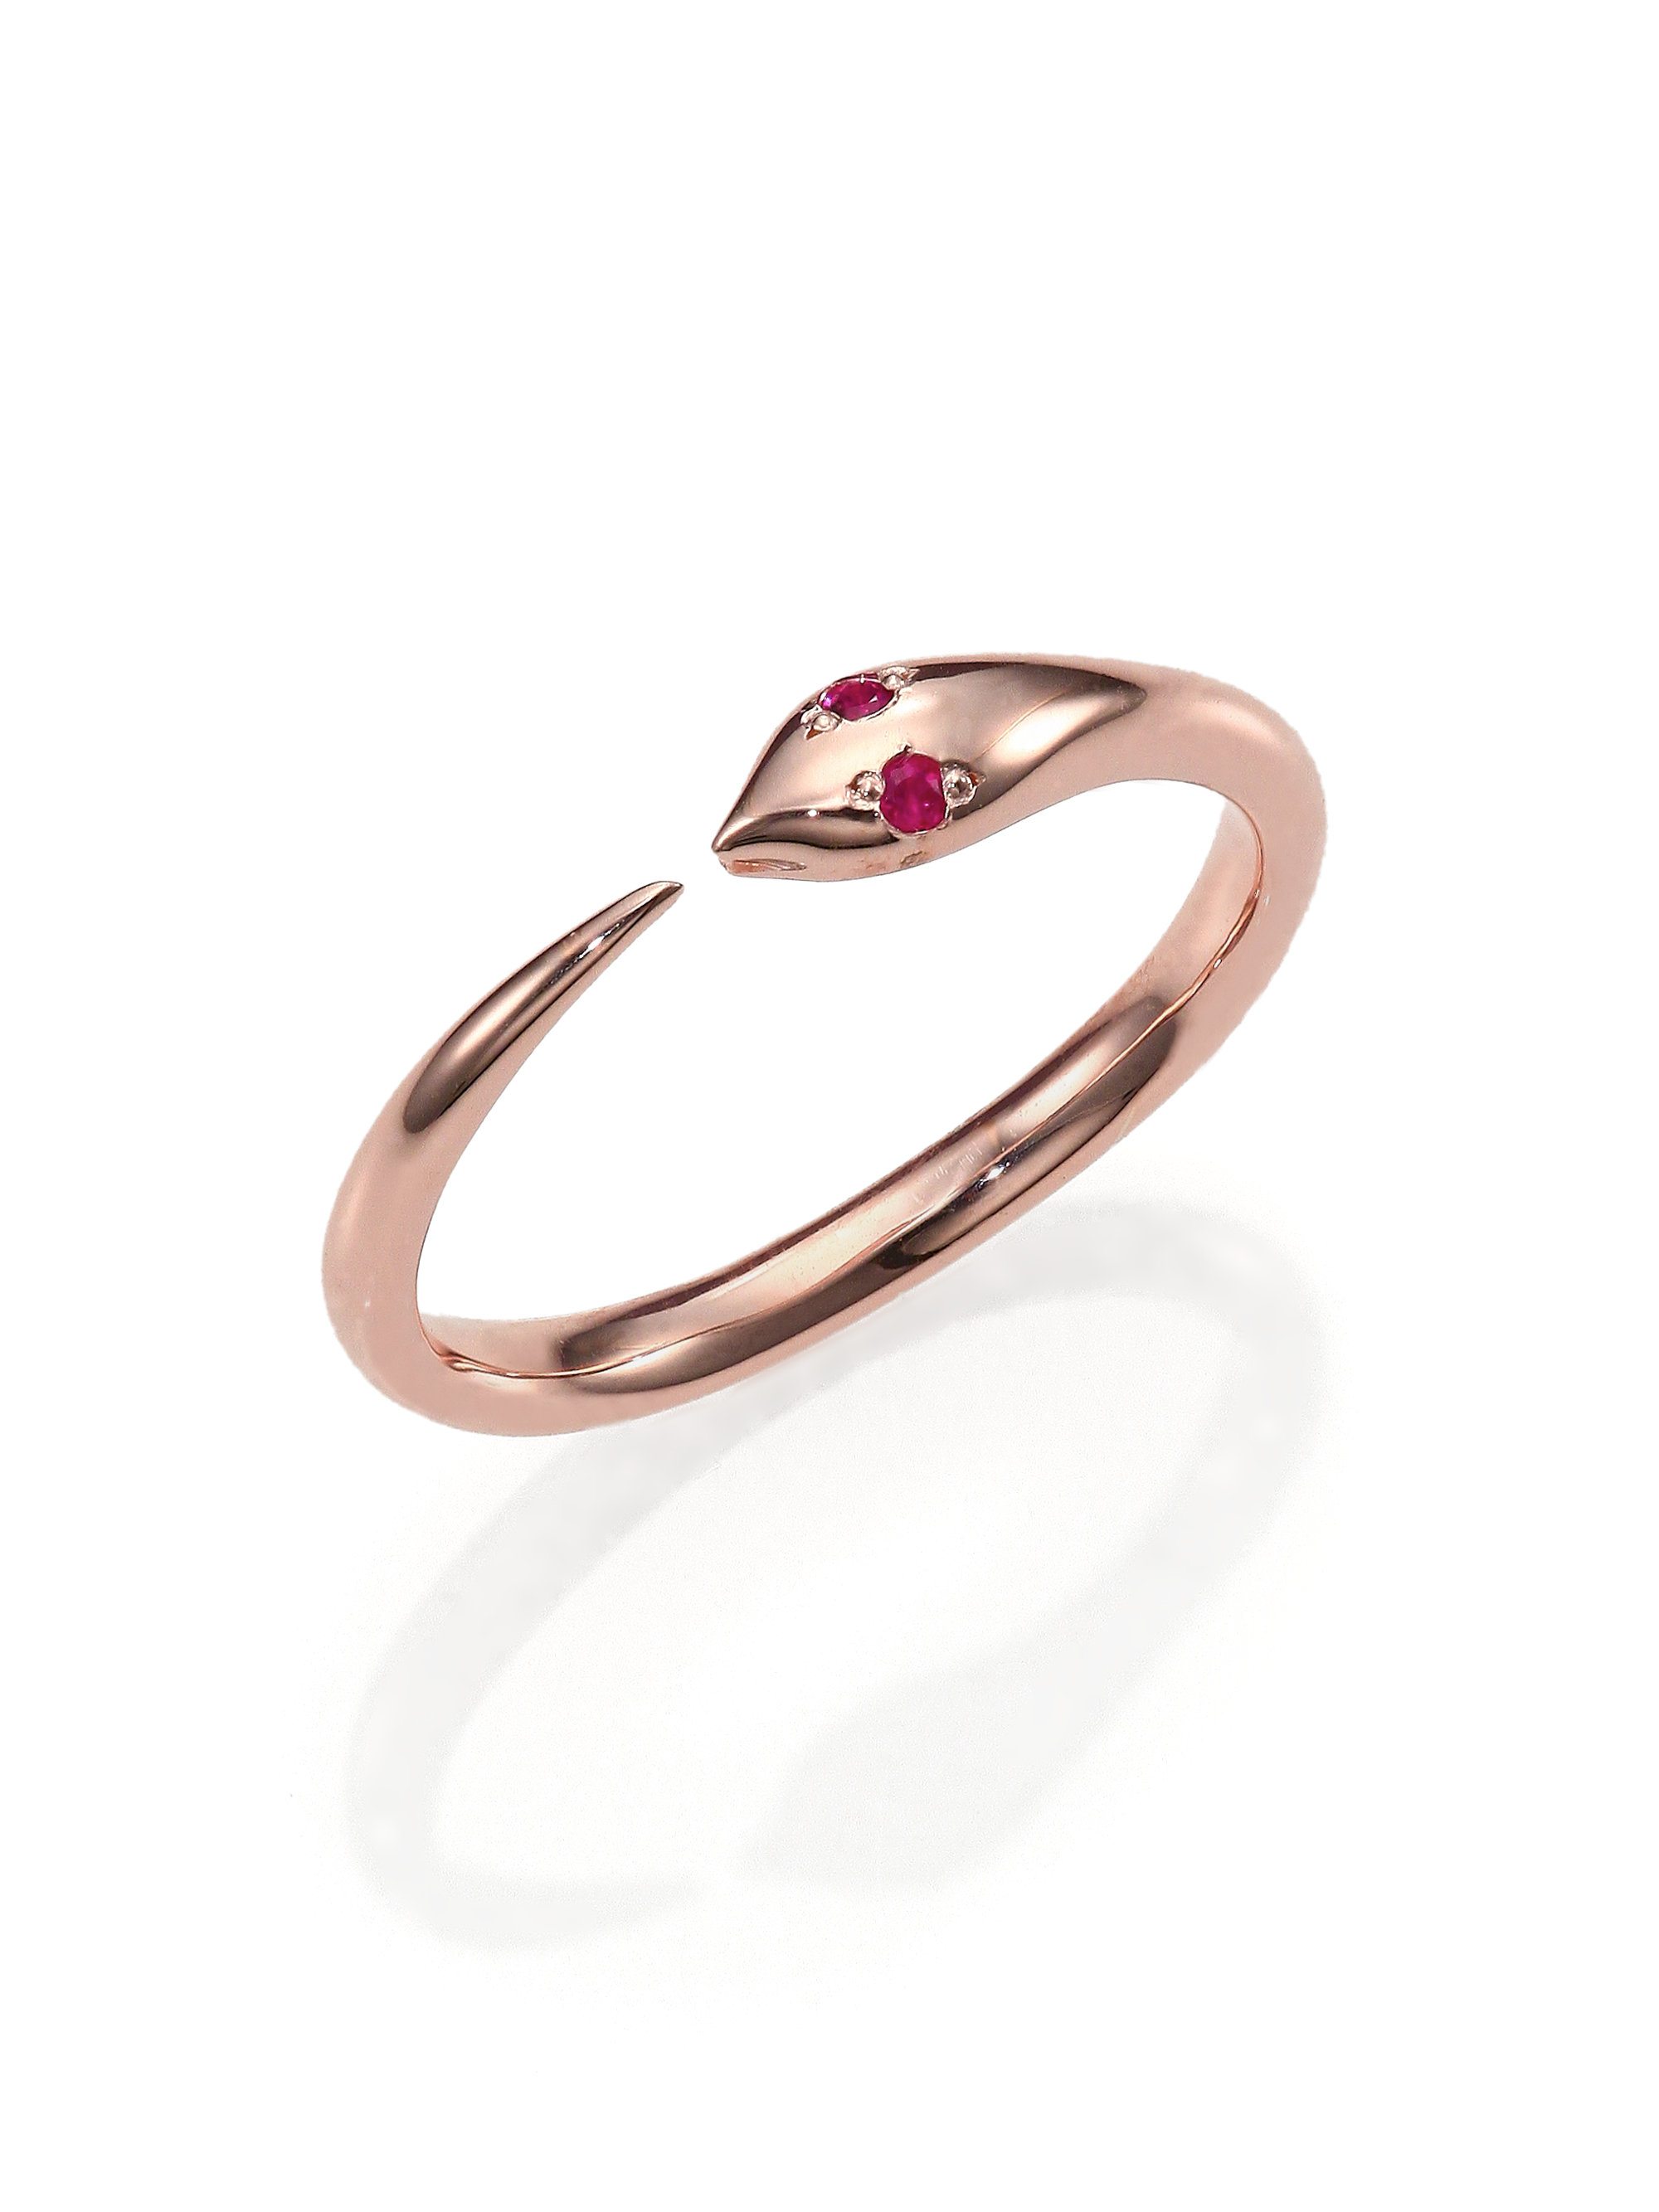 jewelry rose gold engagement normal in arty ny lyst rings product ring diamond pink ginette gallery straw mini